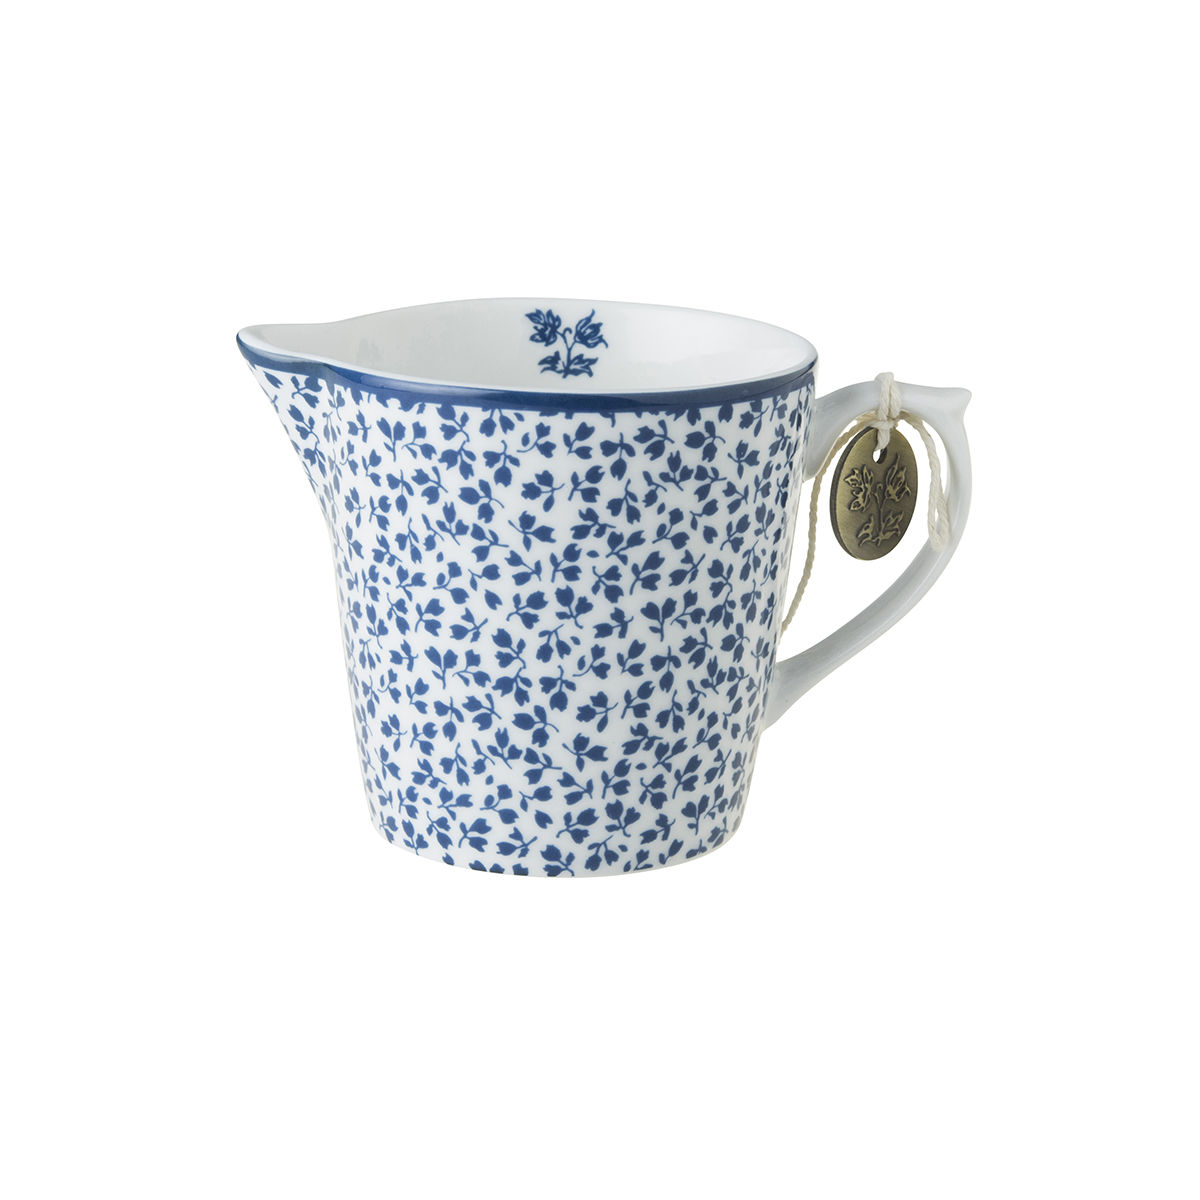 Laura Ashley Milk Jug Creamer in Floris - product images  of